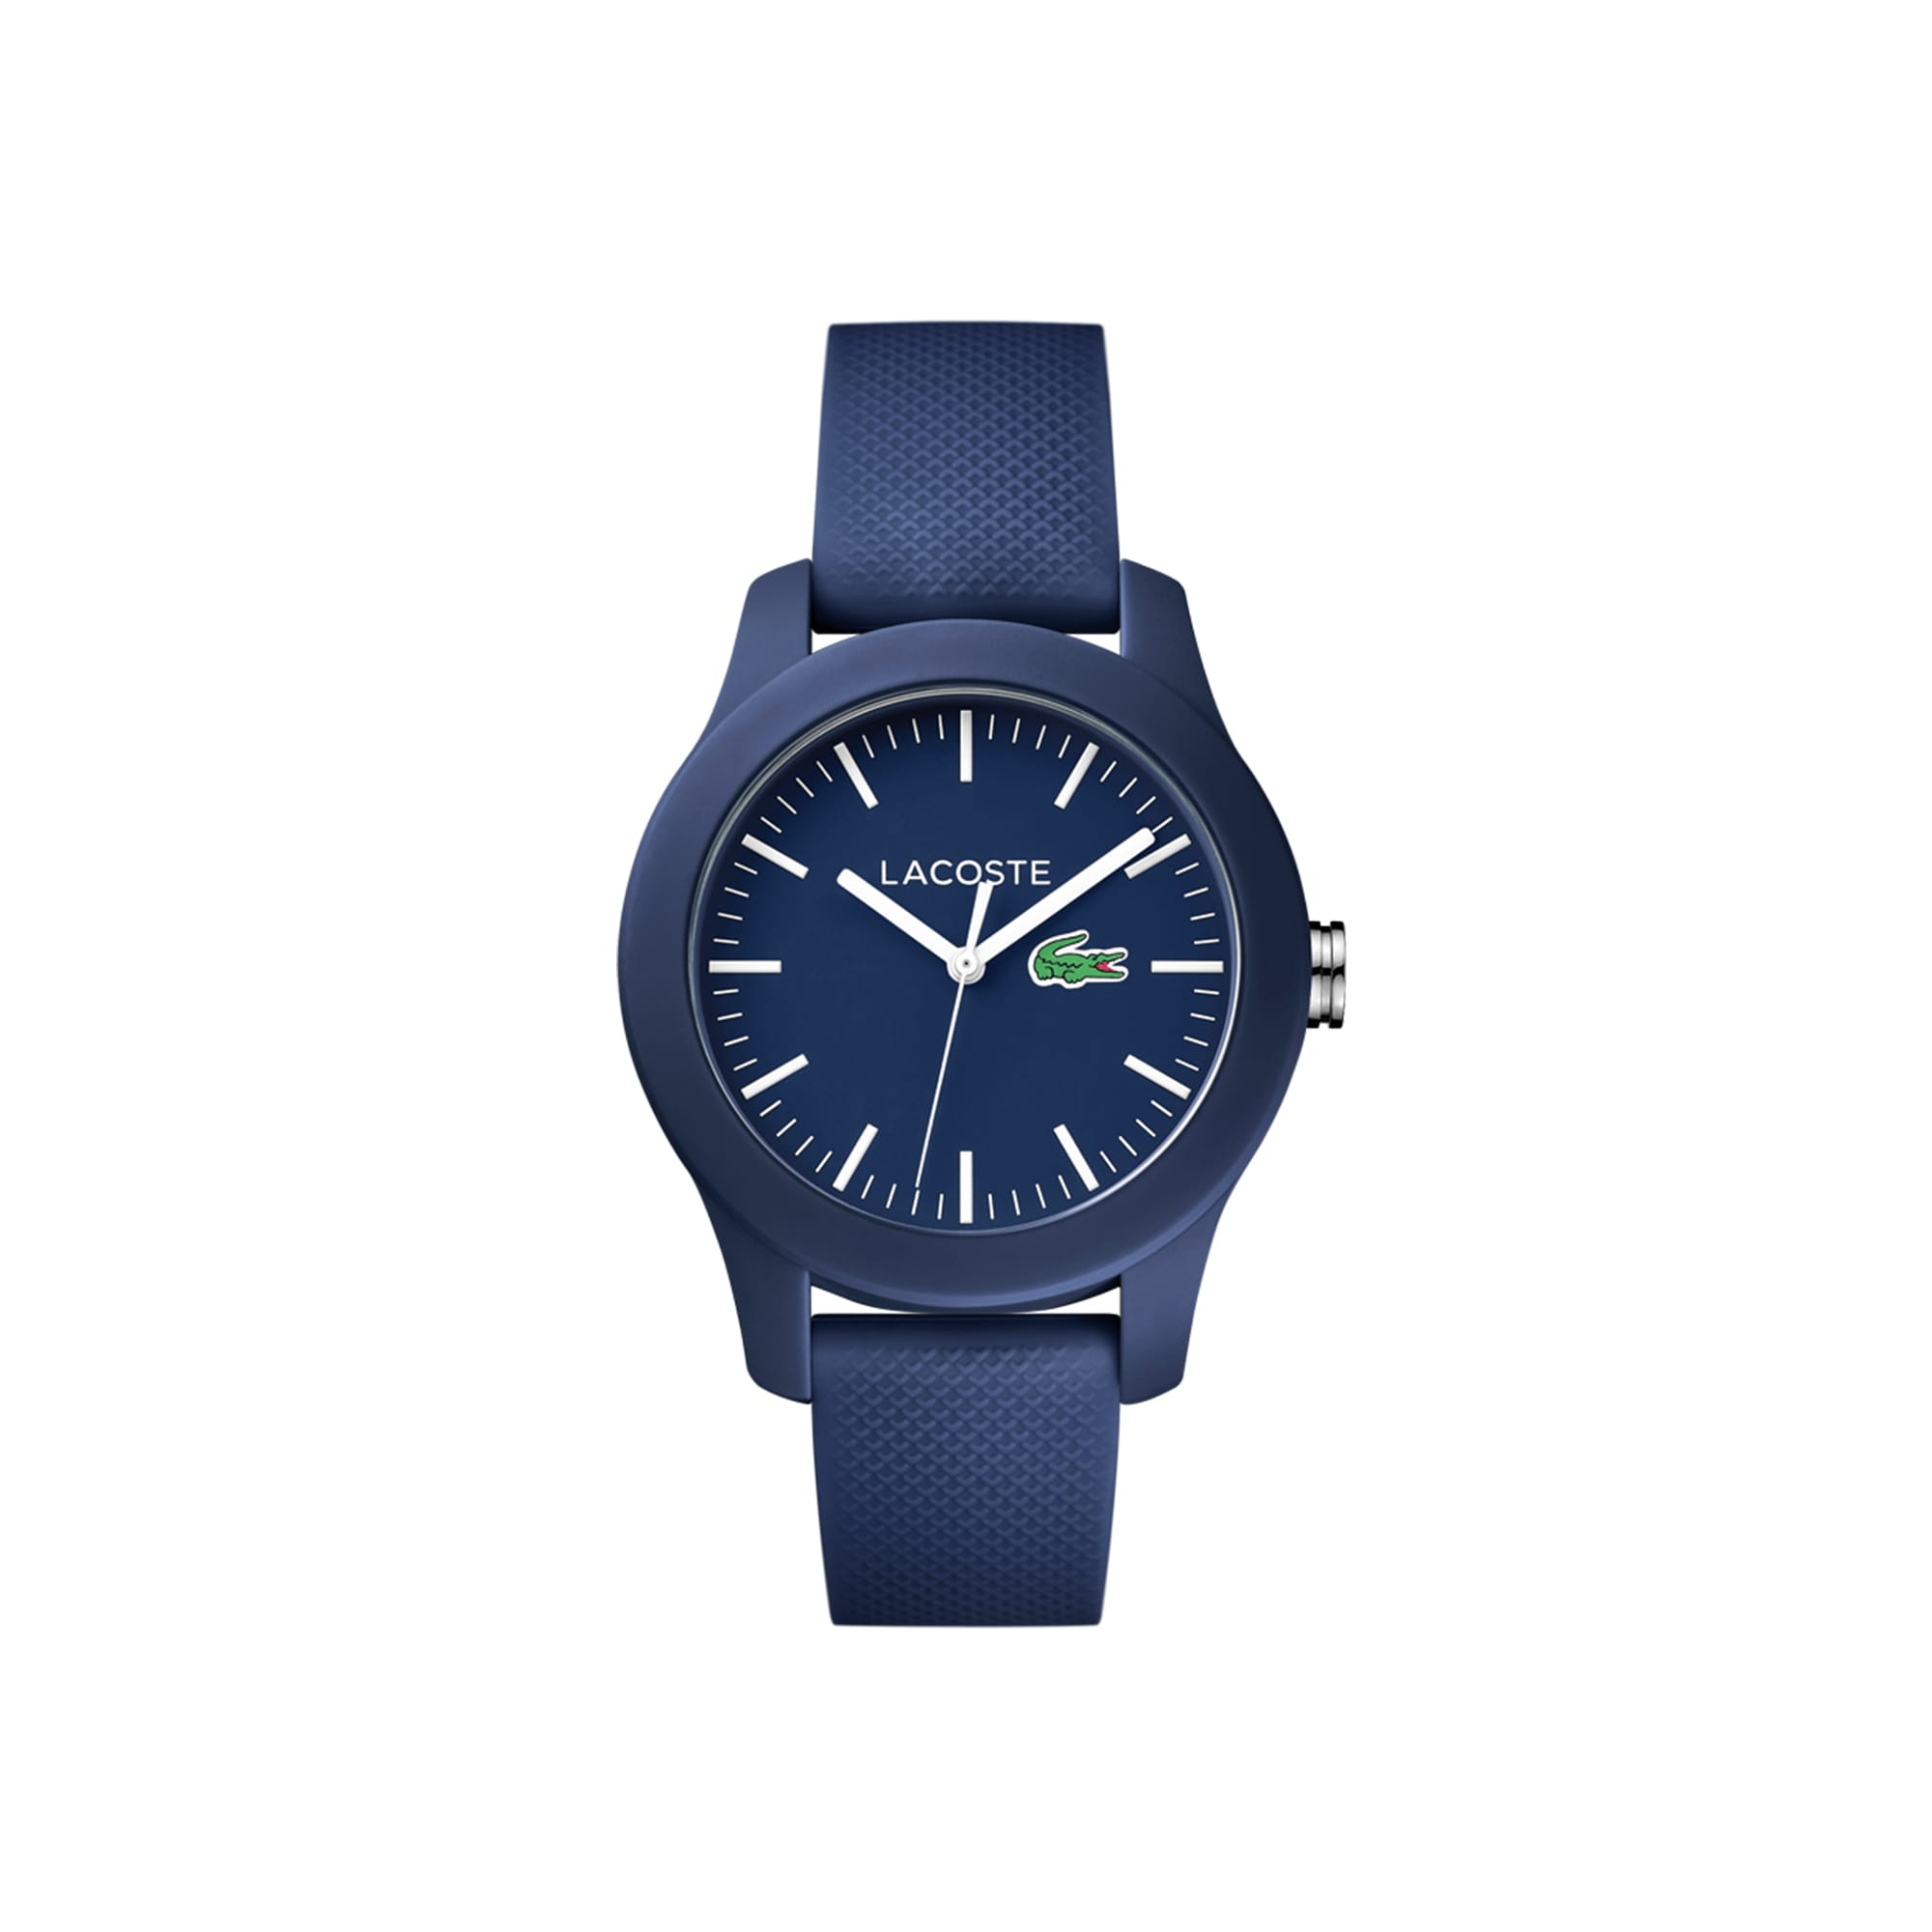 Women's Lacoste 12.12 Watch with Blue Silicone Strap